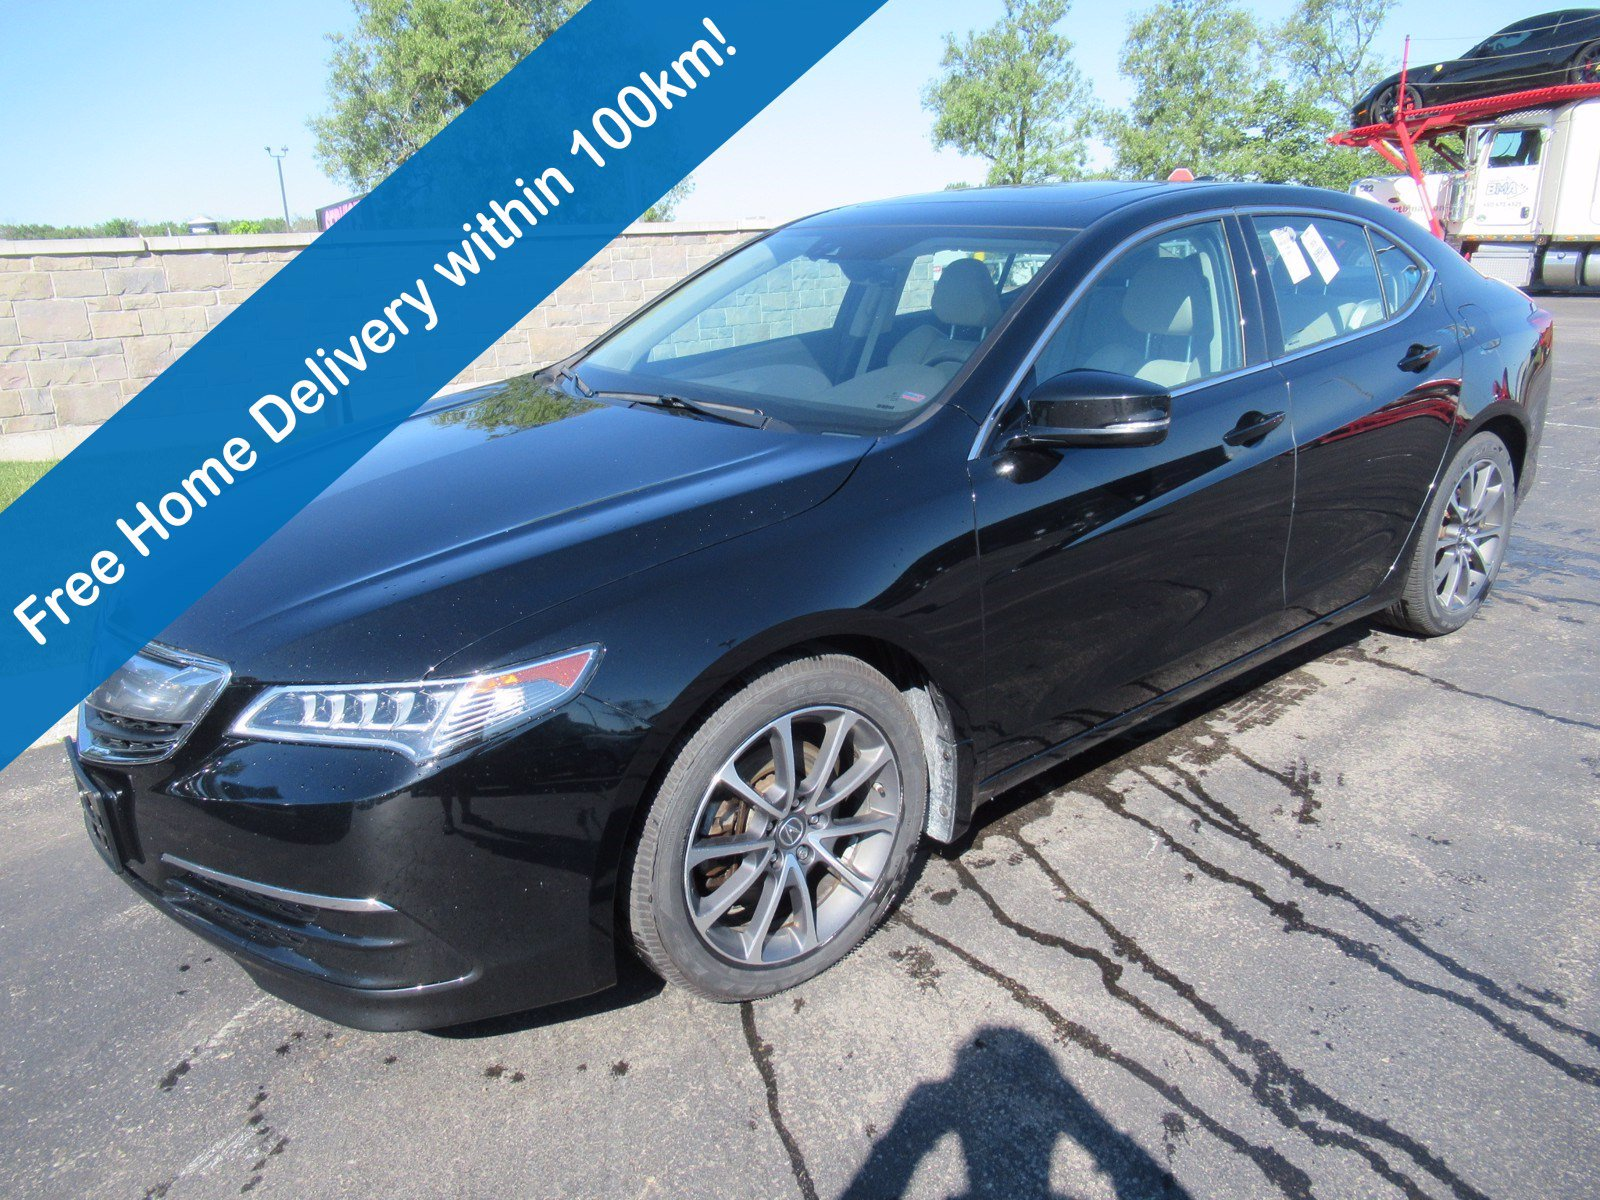 Certified Pre-Owned 2016 Acura TLX V6 Tech AWD, Leather, Navigation, Sunroof, Heated + Memory + Power Seat & Much More!